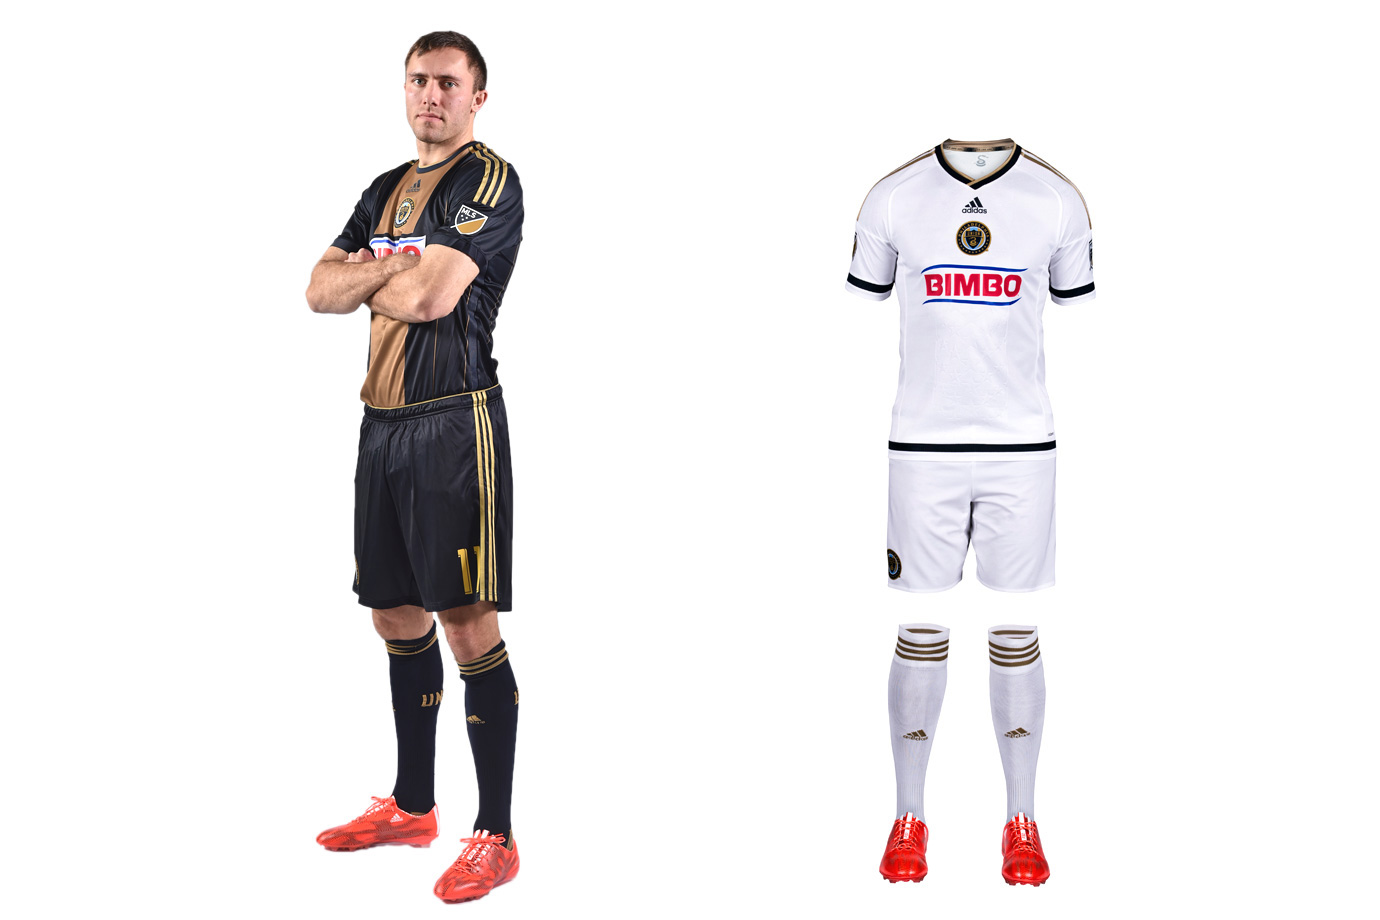 "The Union got it right in 2010. The inaugural navy kit with the gold center stripe, reflecting the Philadelphia flag, was iconic. The gold-and-blue away set, a reversal of the primary, was one-of-a-kind. The holdover home uniform still looks great, although the sponsor's logo wrecks the balance. But the new secondary is a disaster, a needless departure from the brand and an 10th all-white MLS kit. Once innovators, the Union are now followers. The ""WE ARE ONE"" collar slogan, the tiny snake below the neckline and the embossed stars on the front are lost in a sea of white."